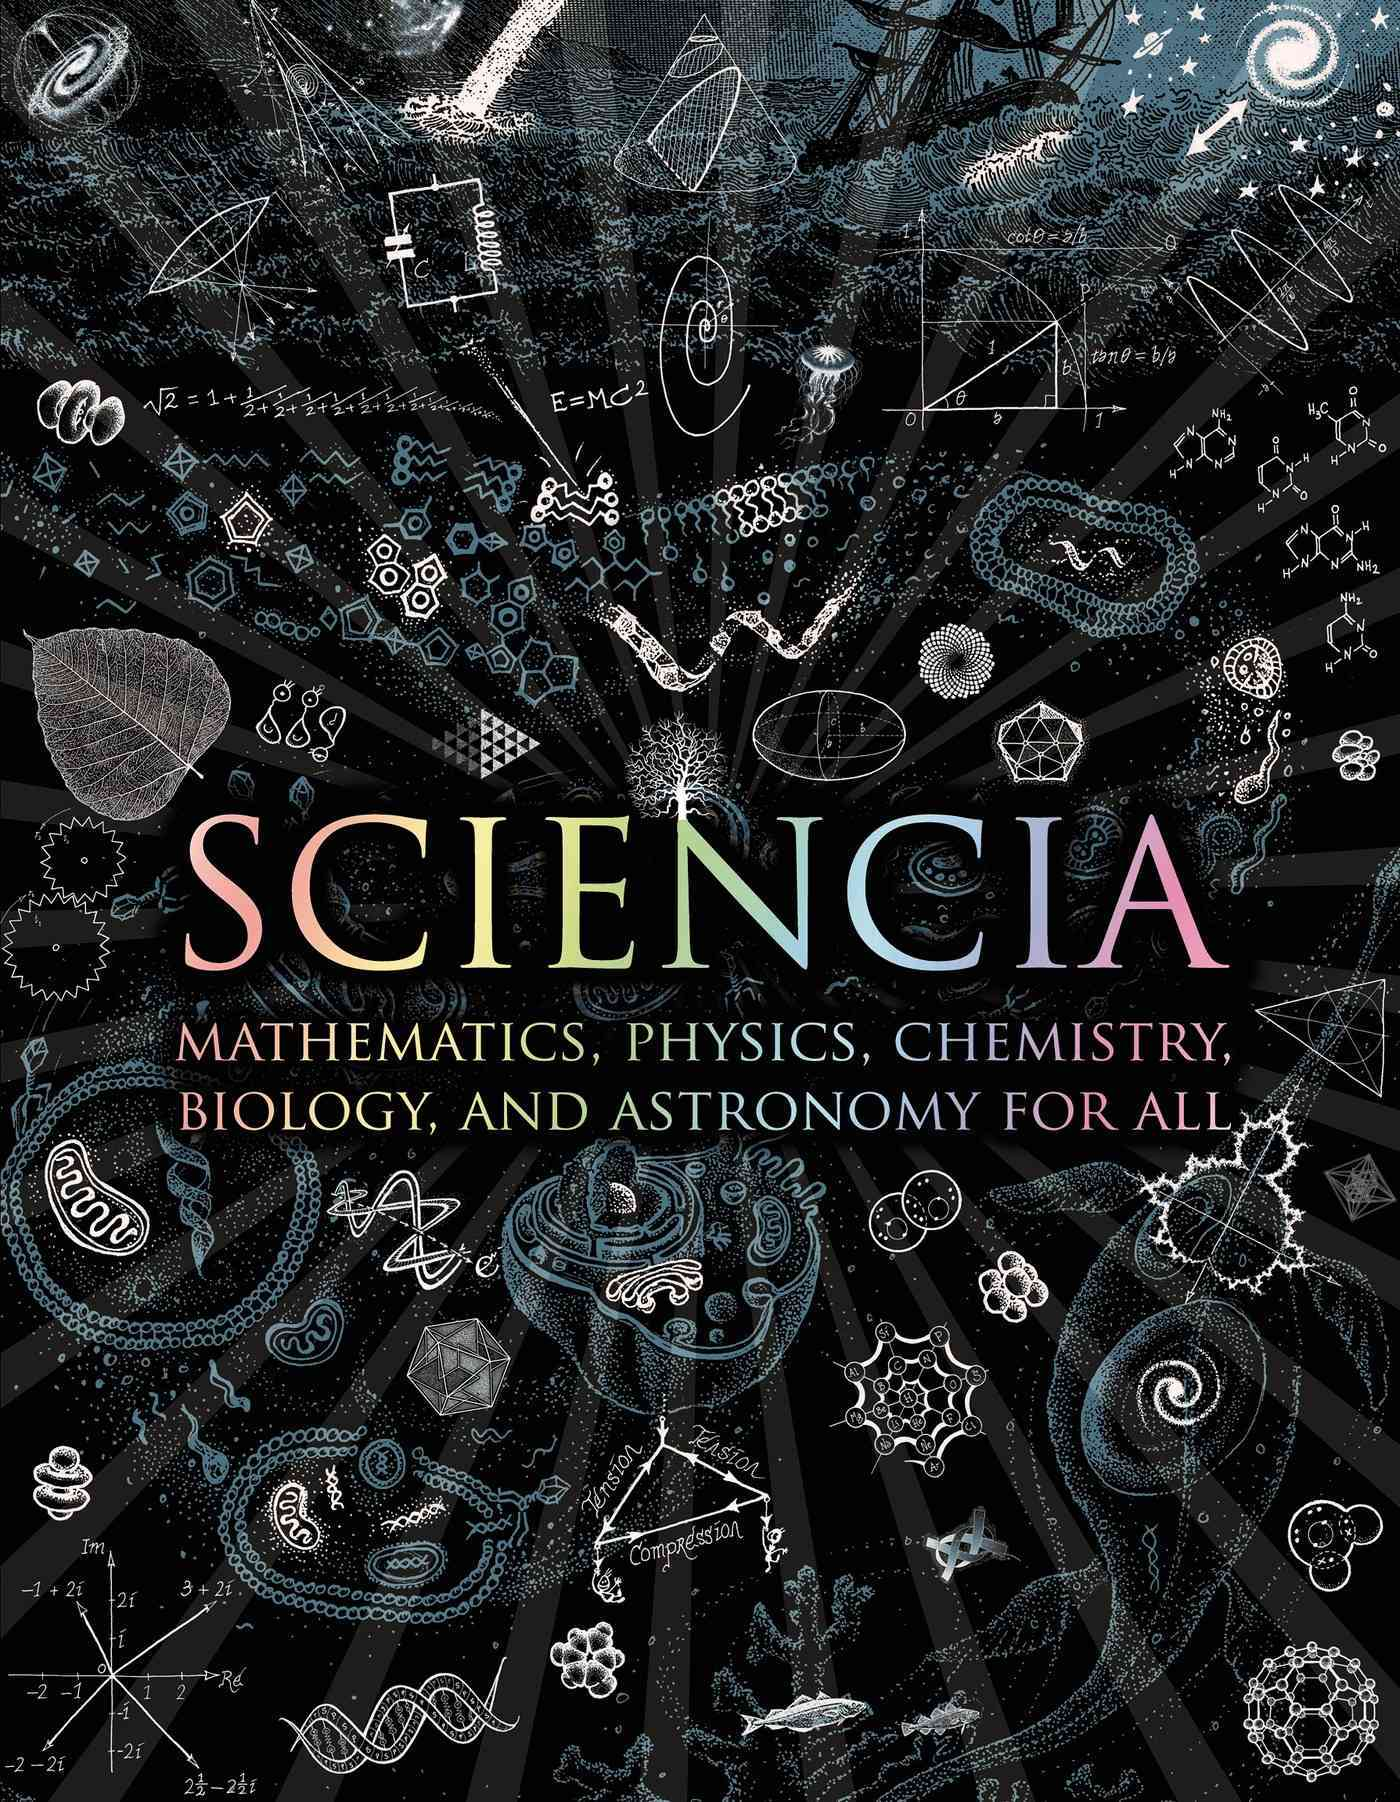 Sciencia: Mathematics, Physics, Chemistry, Biology, and Astronomy for All (Hardcover)